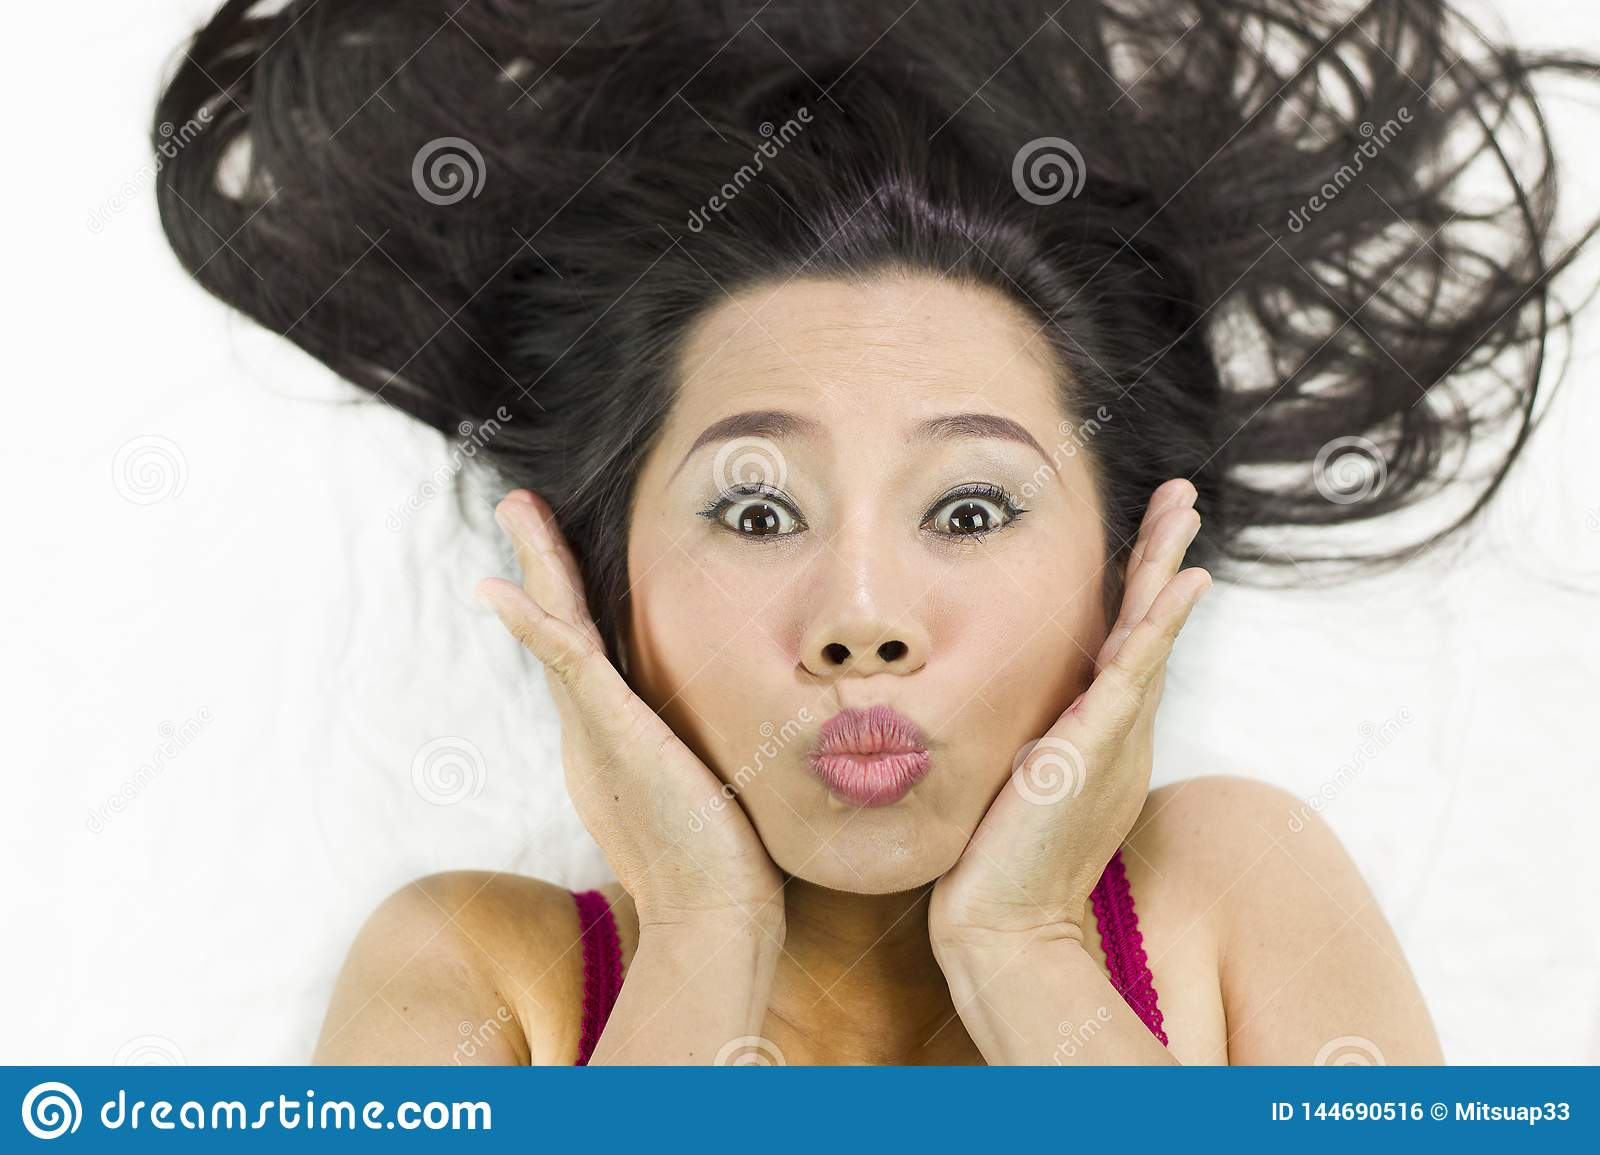 Closeup portrait of happy asian women  lying on ground with black long hair. acting smile, fun